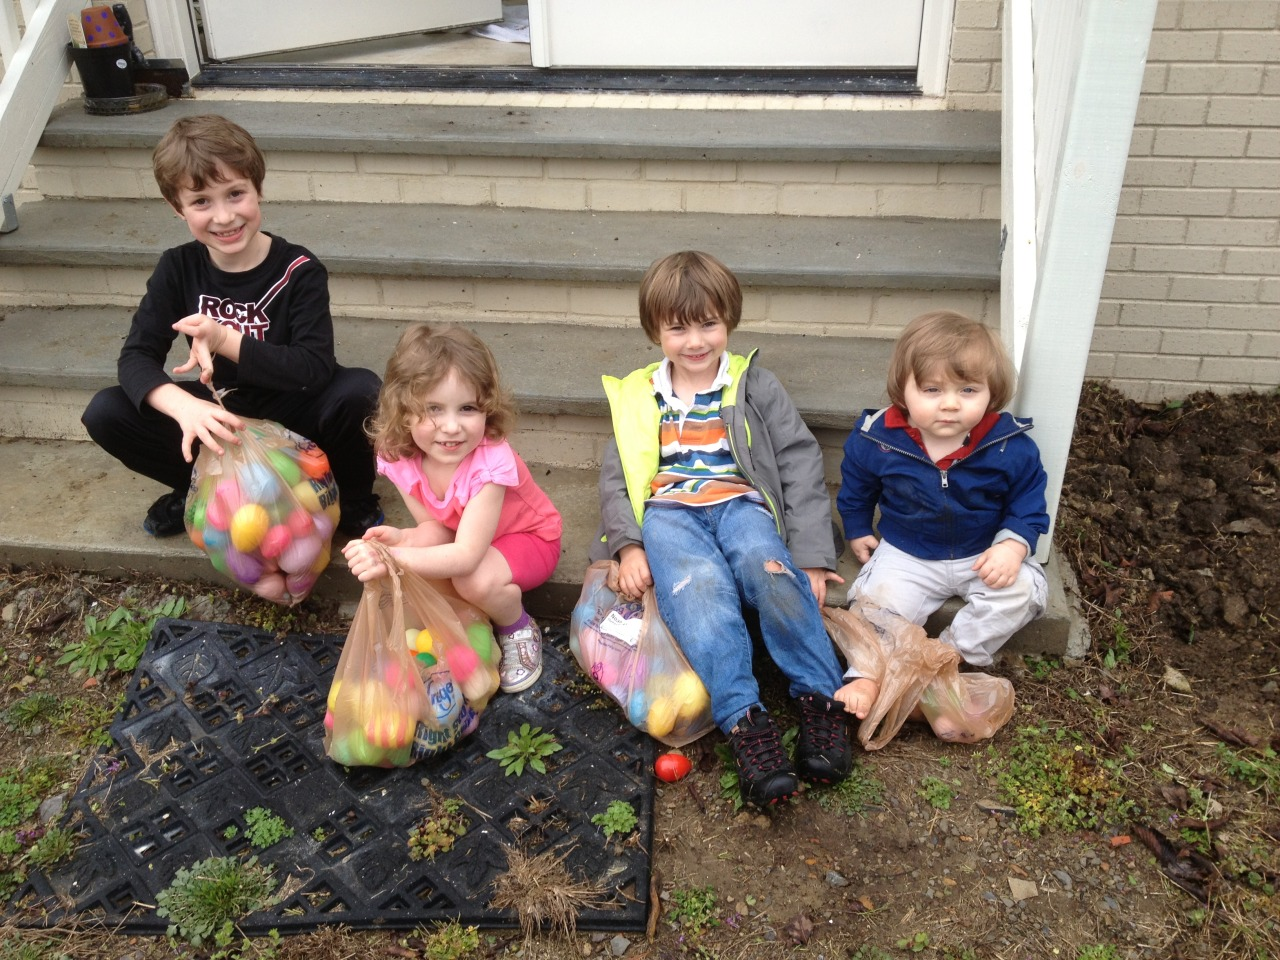 Easter egg hunt. Here's Noah and Jonah with their cousins. It was a little rainy on easter. The rain didn't slow them down at all. The older kids were nice enough to pass over the few eggs put by the door so Jonah could enjoy the egg hunt too.